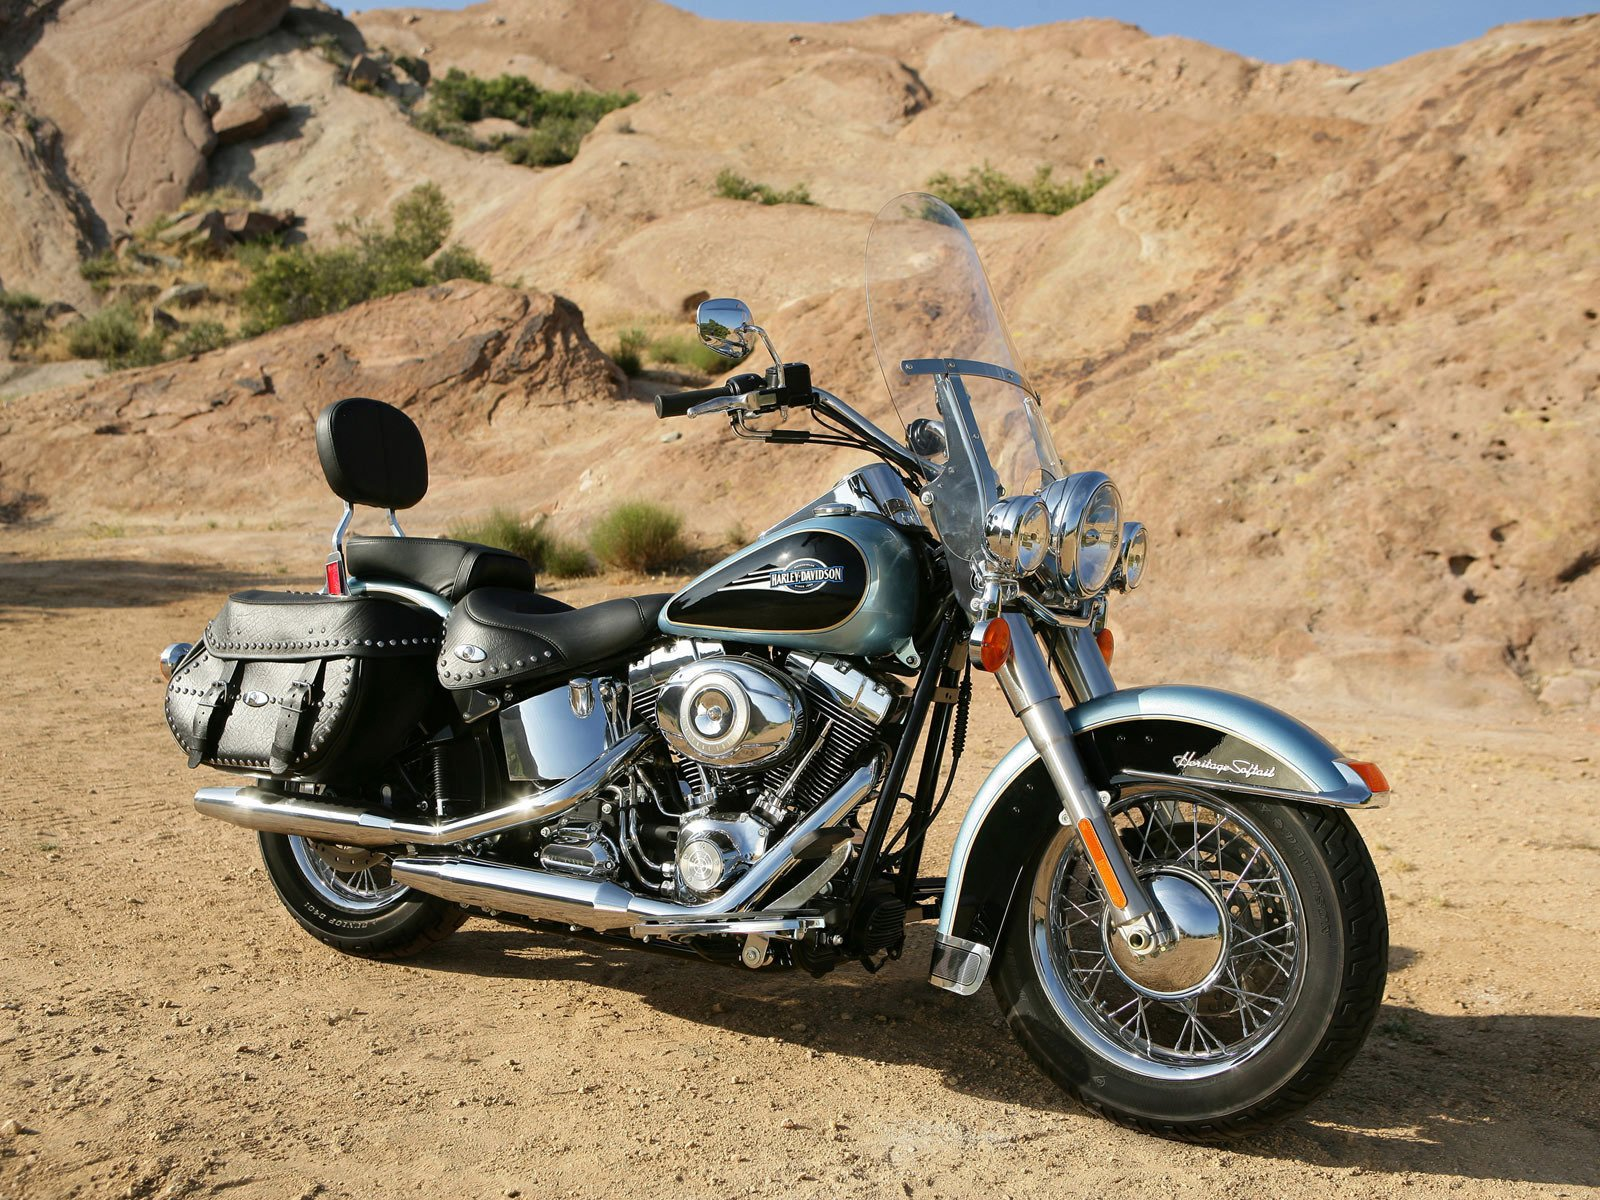 Harley-Davidson Heritage Softail Wallpaper And Background